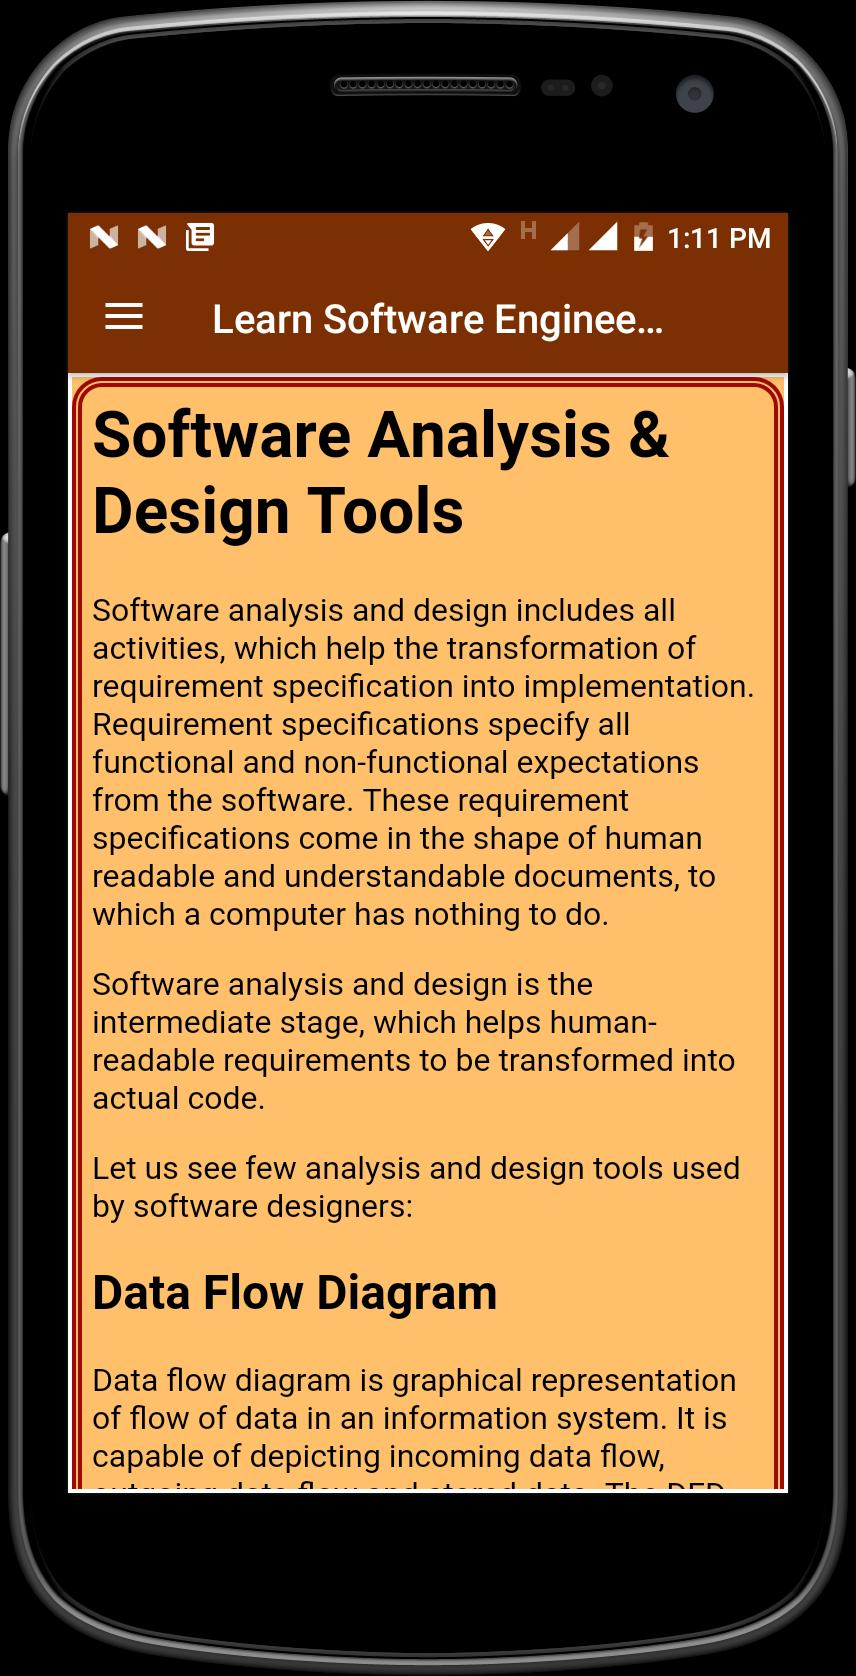 Learn Software Engineering Complete Guide For Android Apk Download